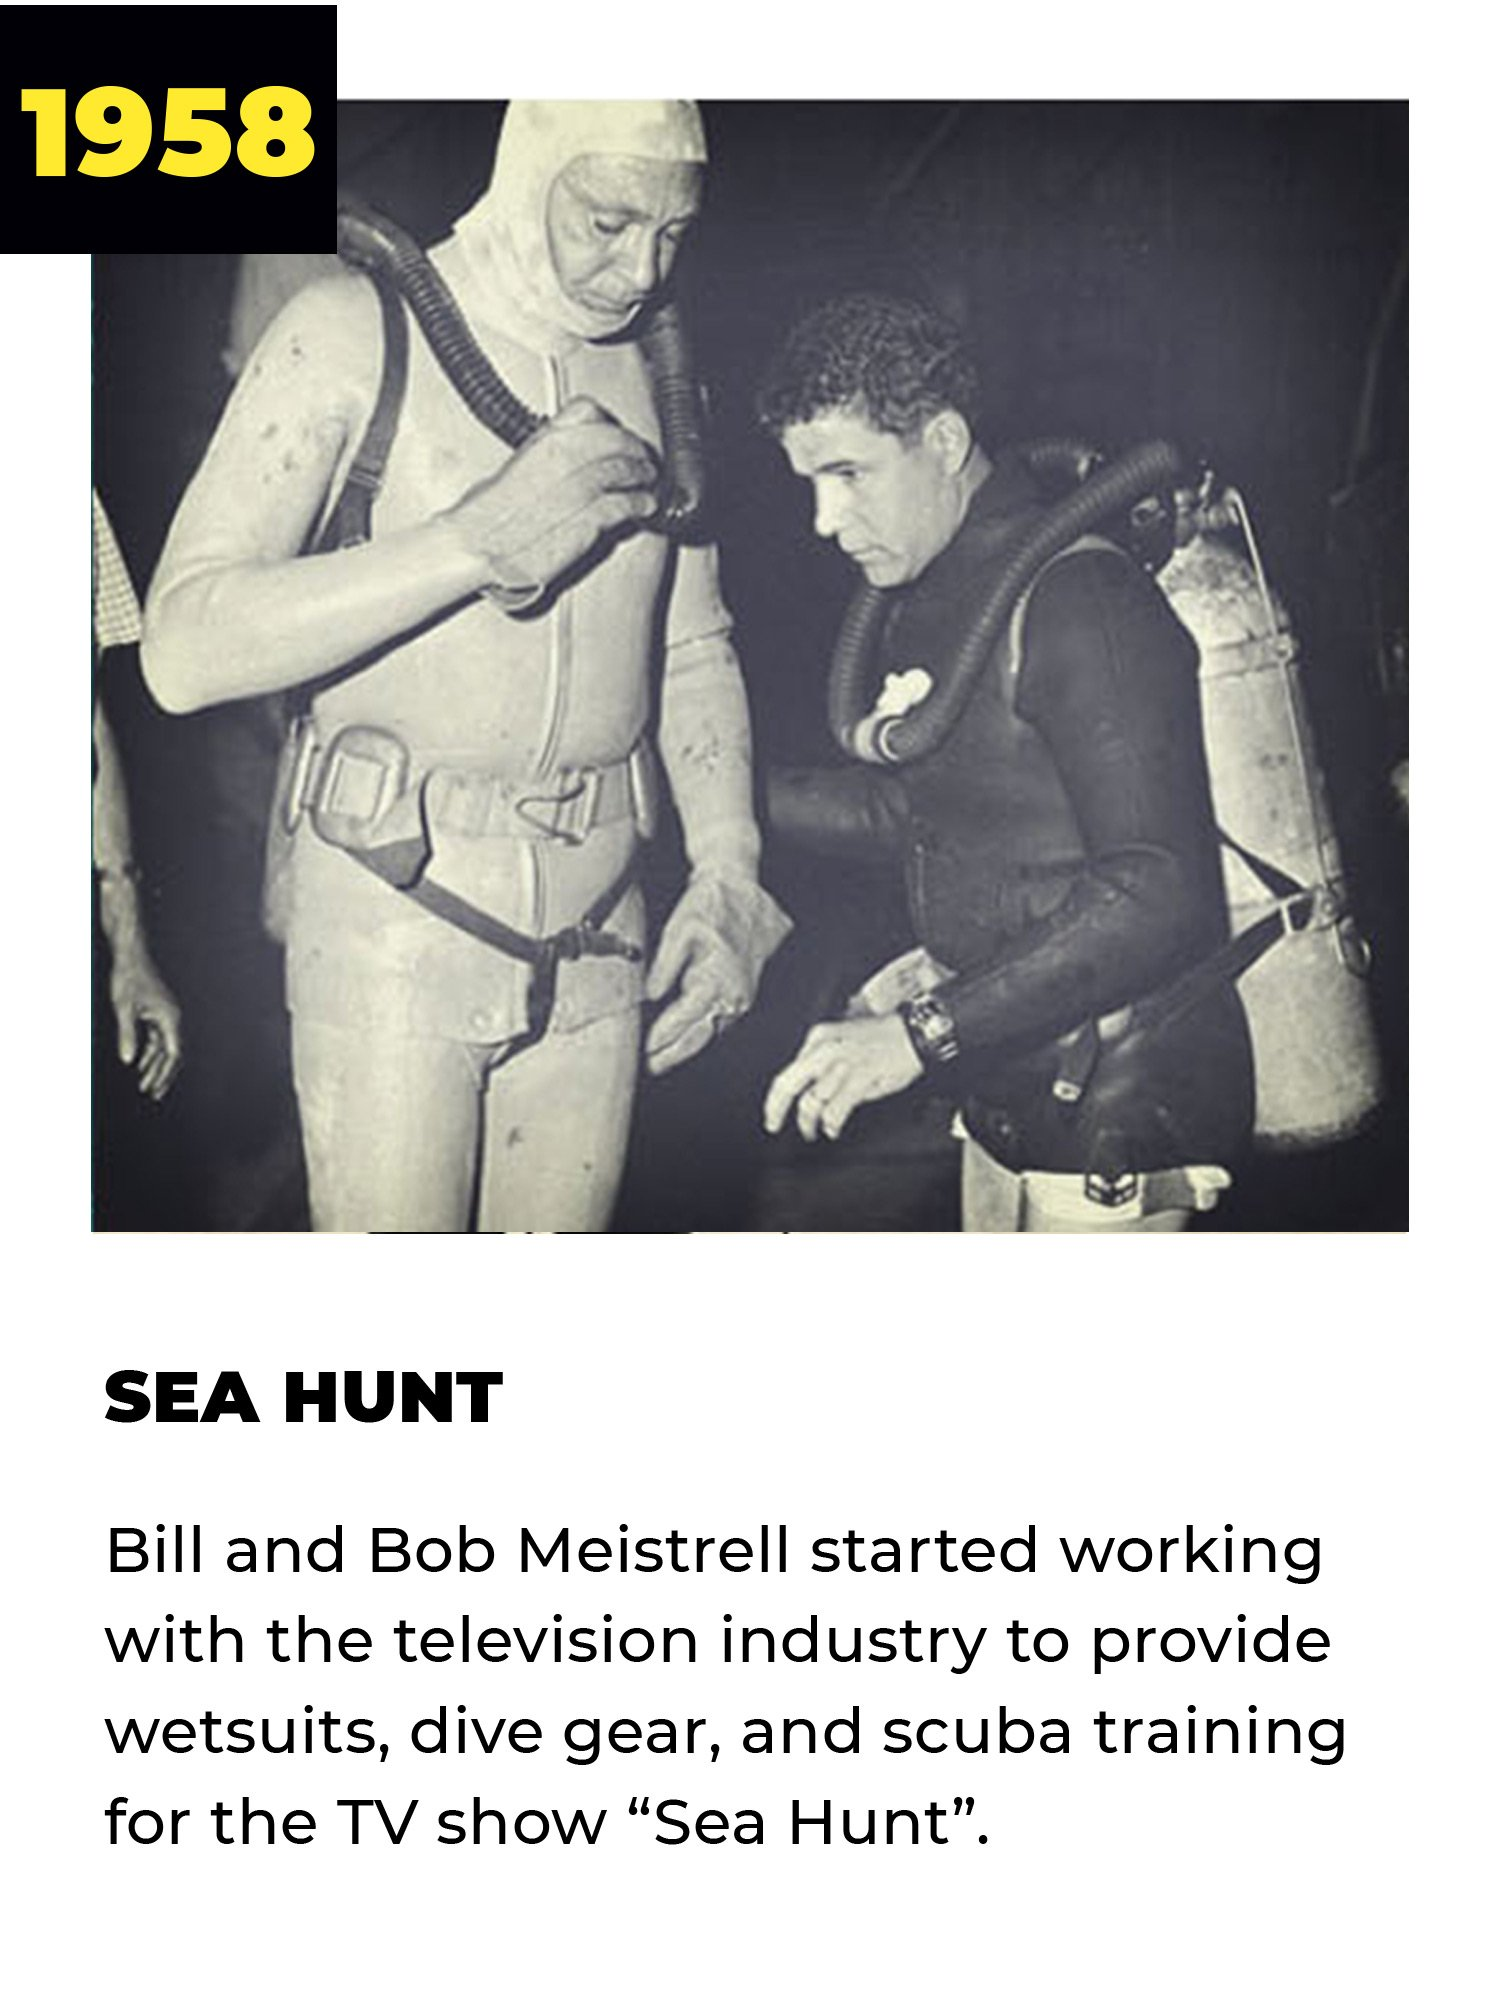 1958 | Sea Hunt | Bill and Bob Meistrell started working with the television industry to provide wetsuits, dive gear, and scuba training for the TV show 'Sea Hunt'.